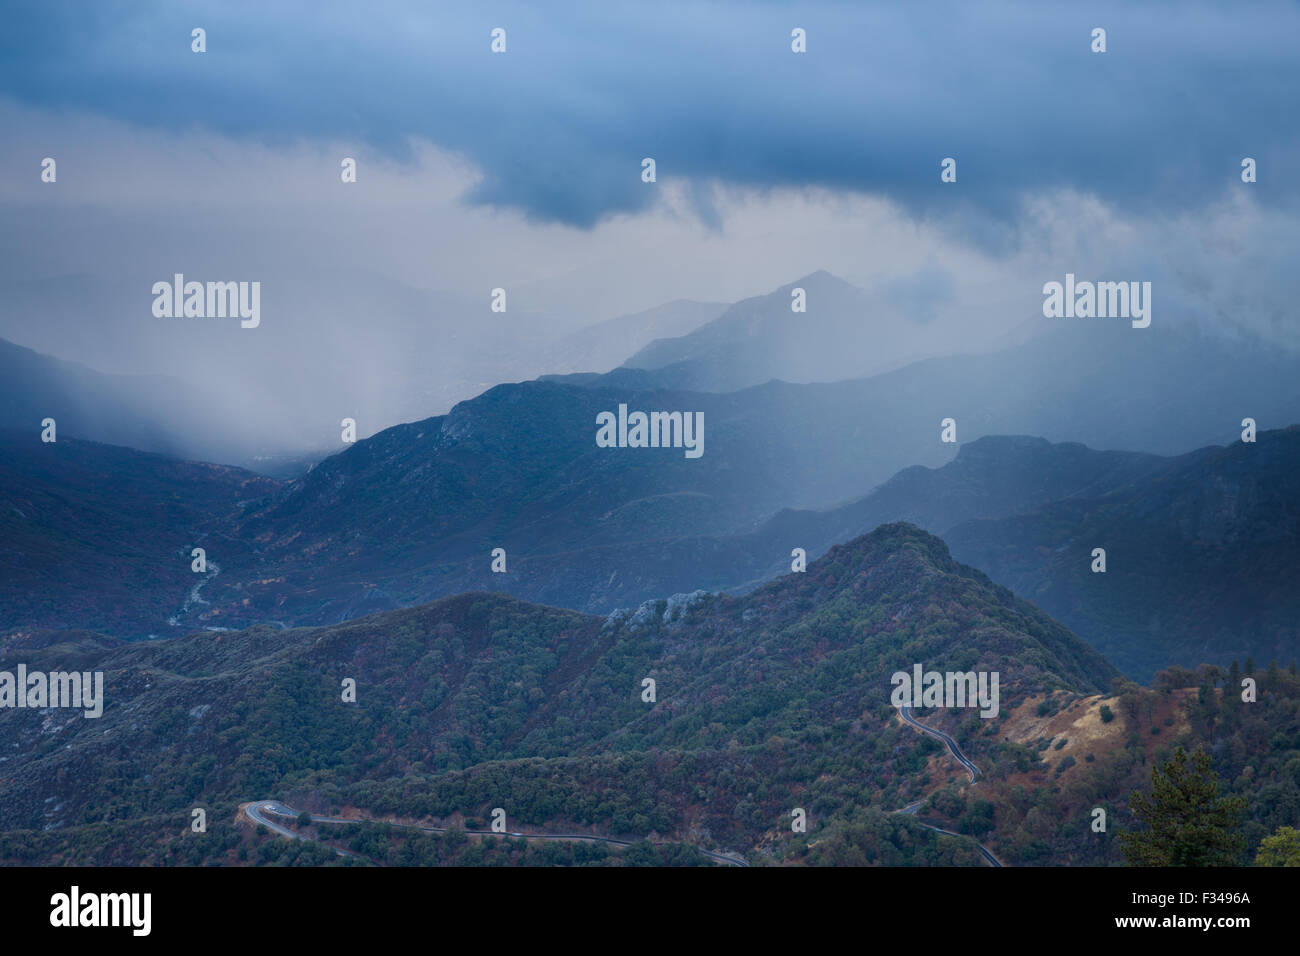 die Kaweah Tal, Sequoia Nationalpark, Kalifornien, USA Stockbild